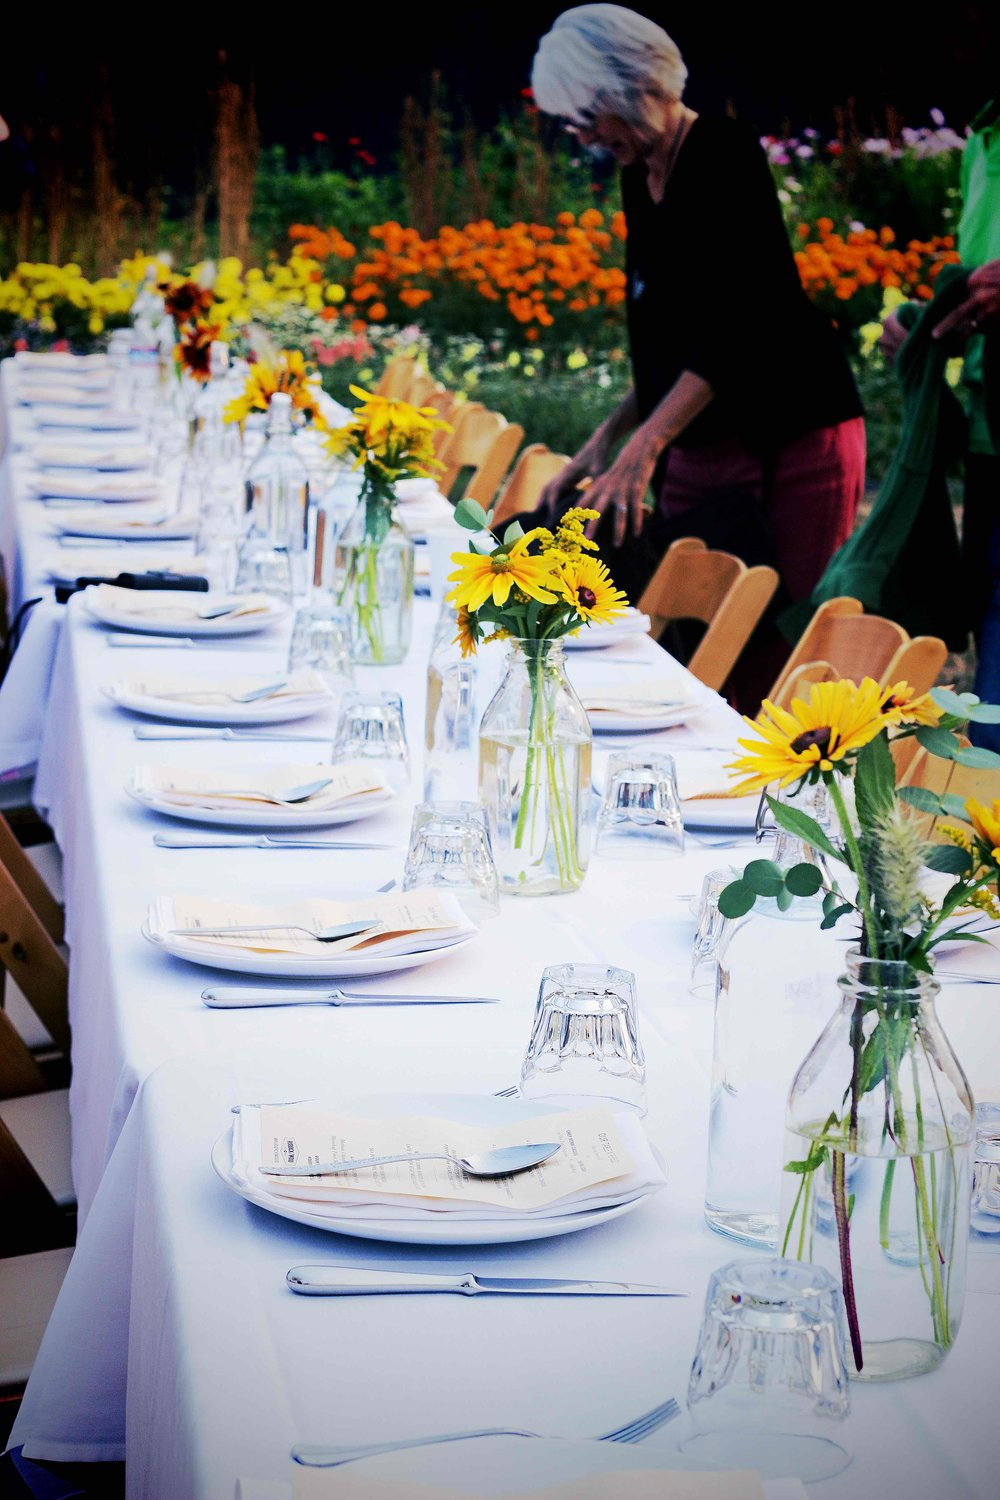 IMG_3677x Our Table_xx.jpg